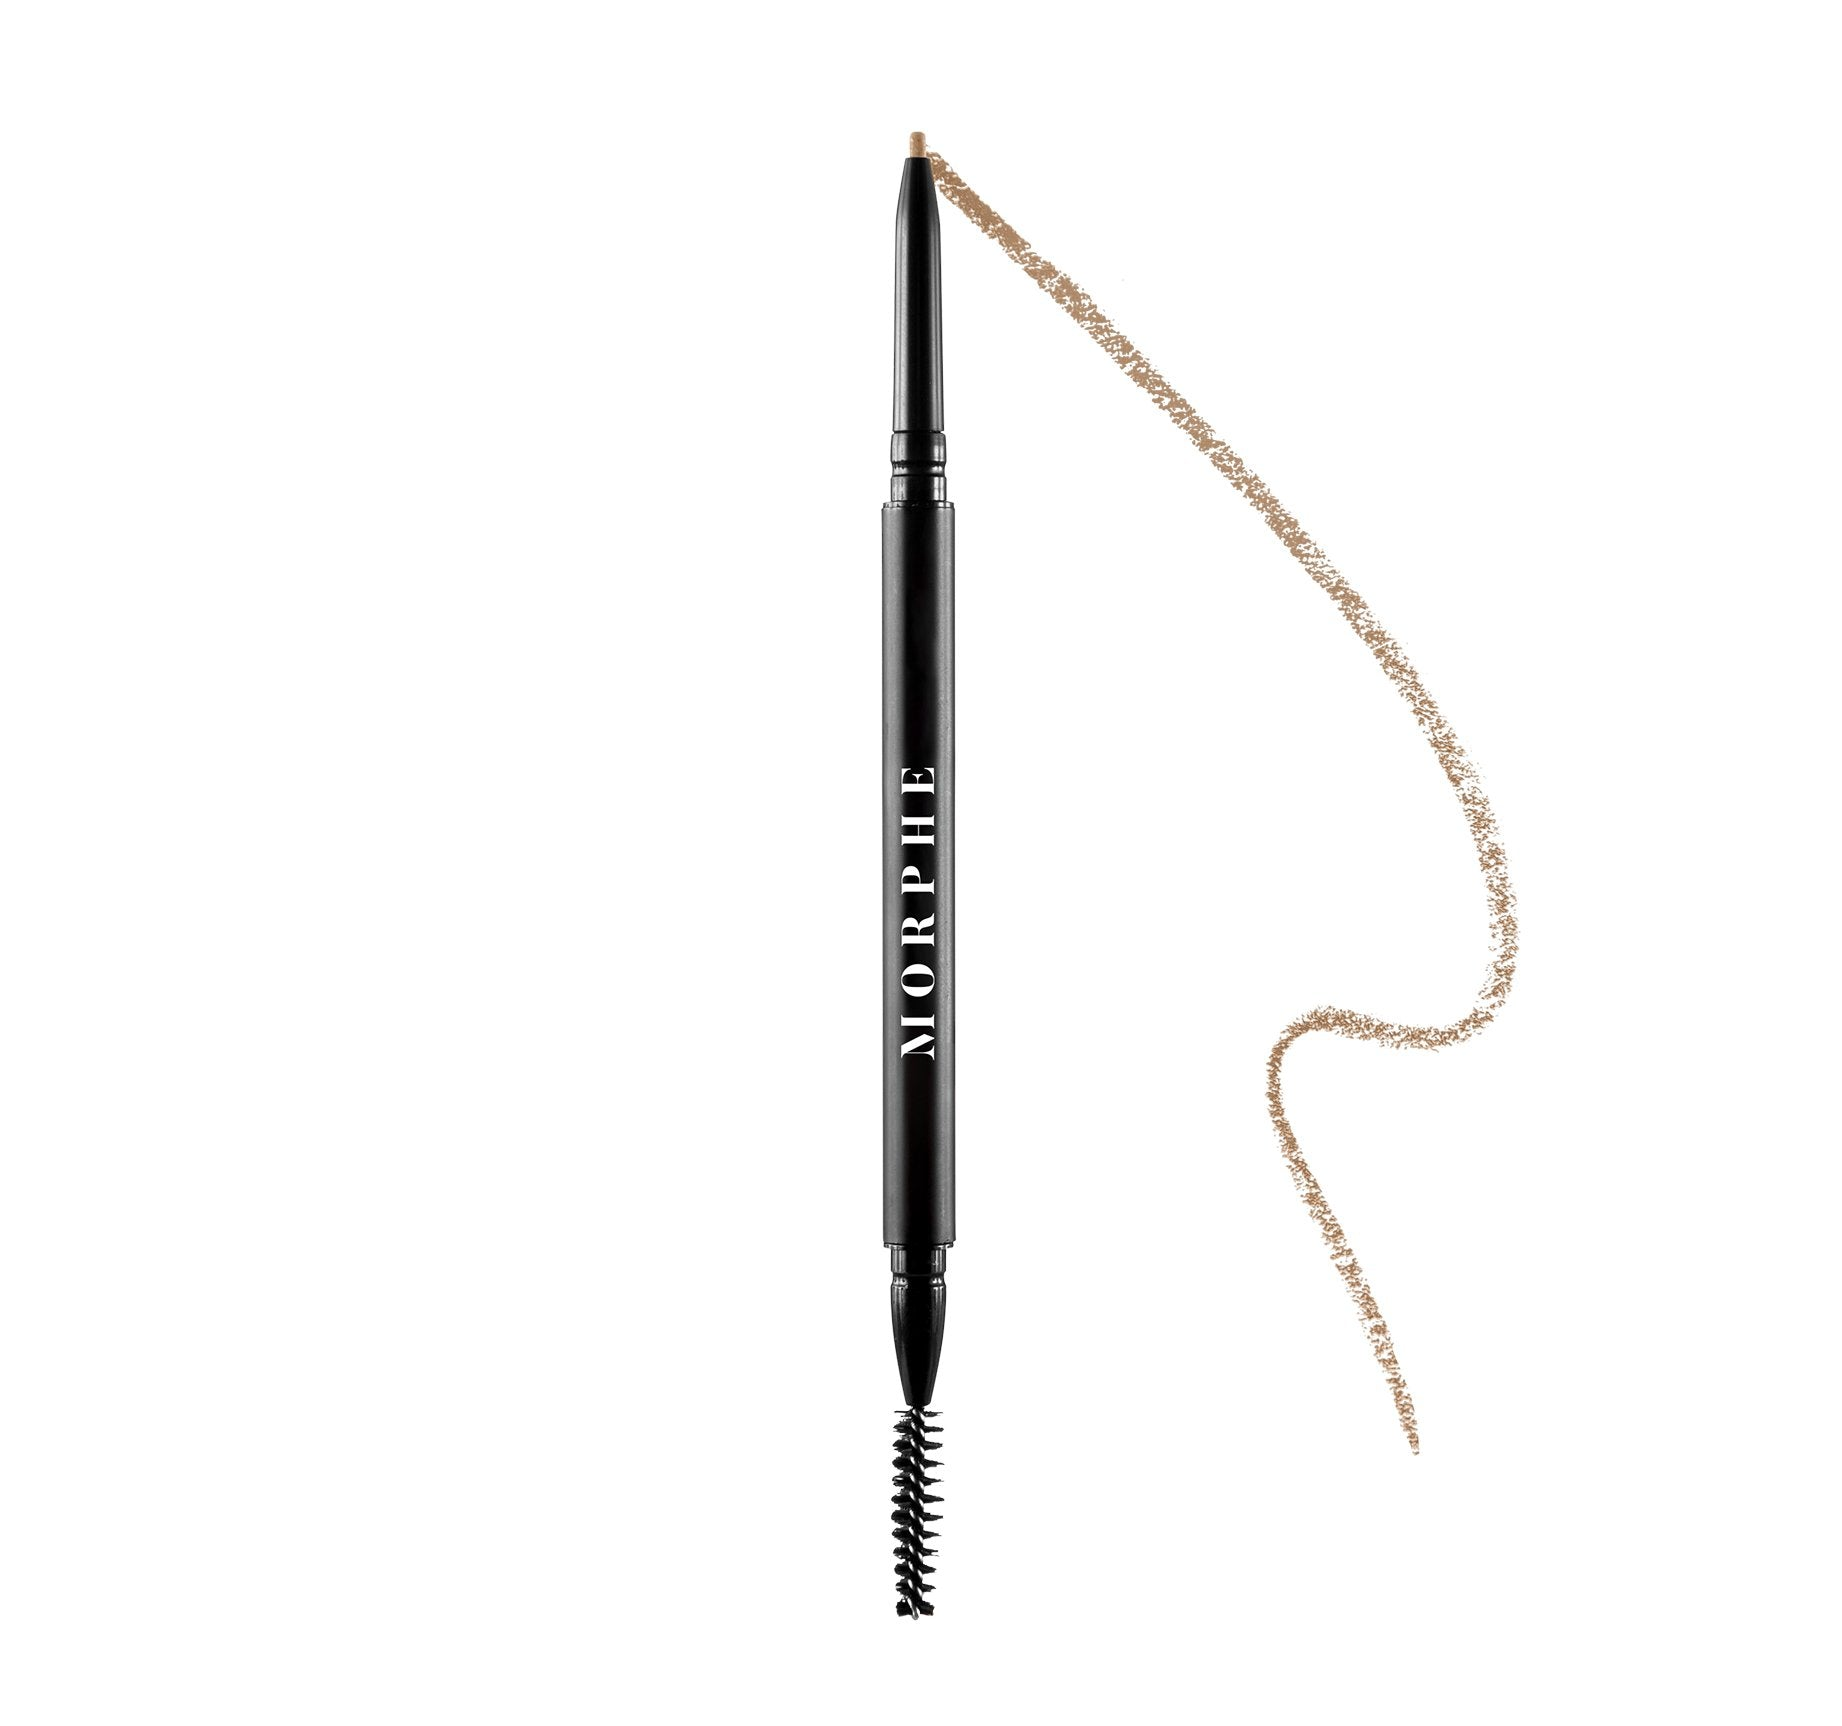 MICRO BROW PENCIL - MACADAMIA, view larger image